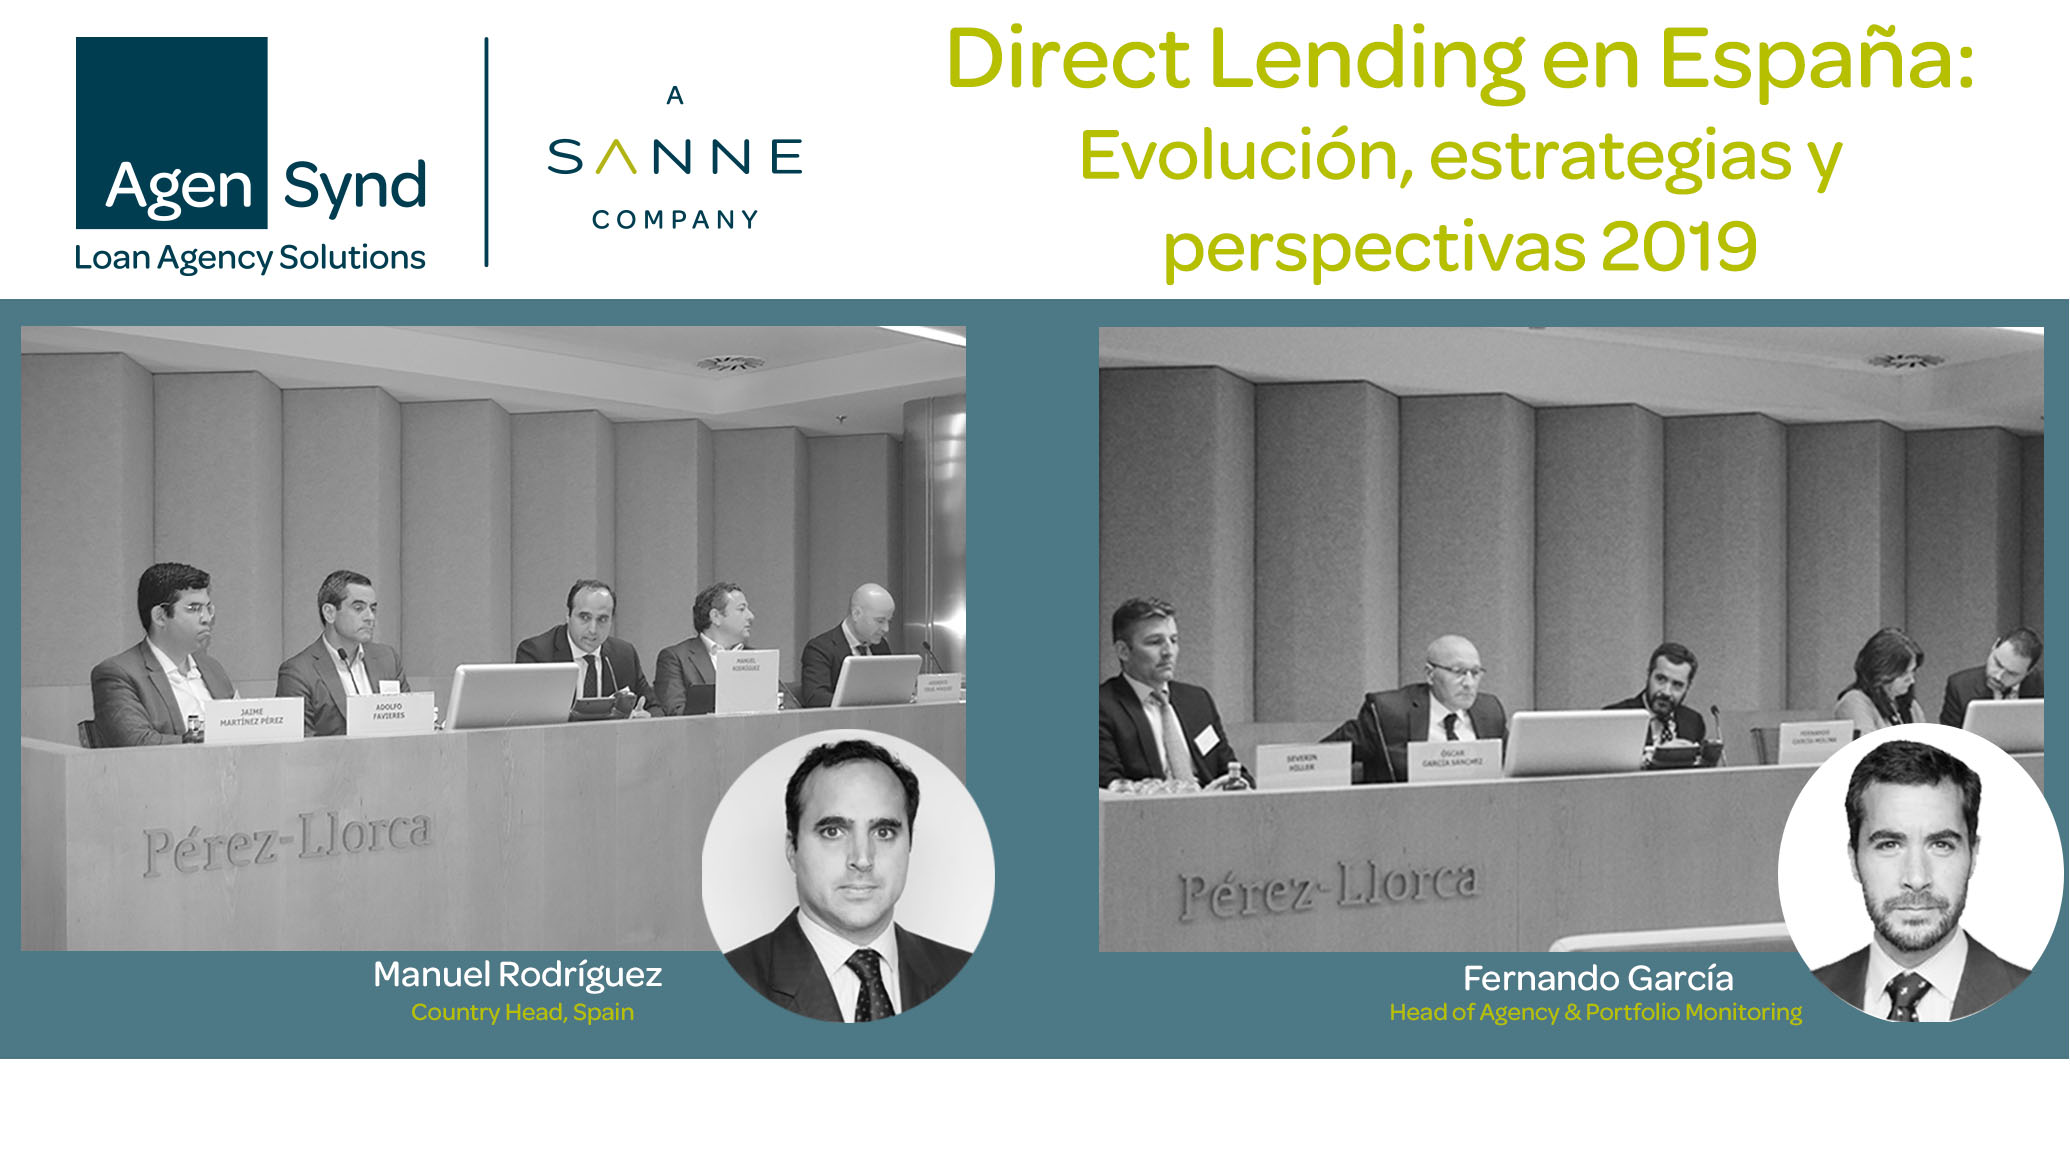 AgenSynd Evento Direct Lending